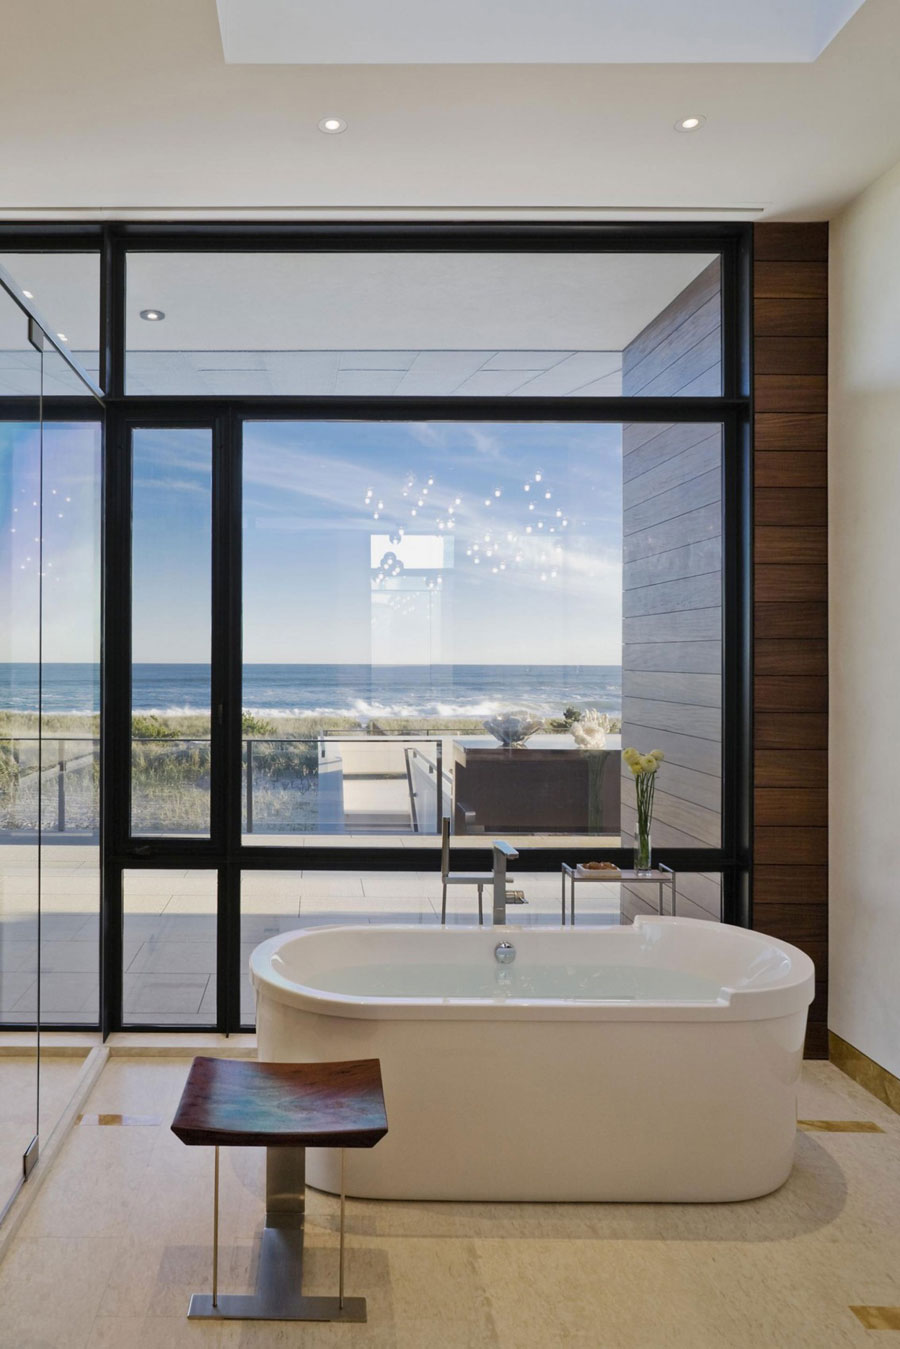 5 An architectural marvel of a modern home designed by Alexander Gorlin Architects